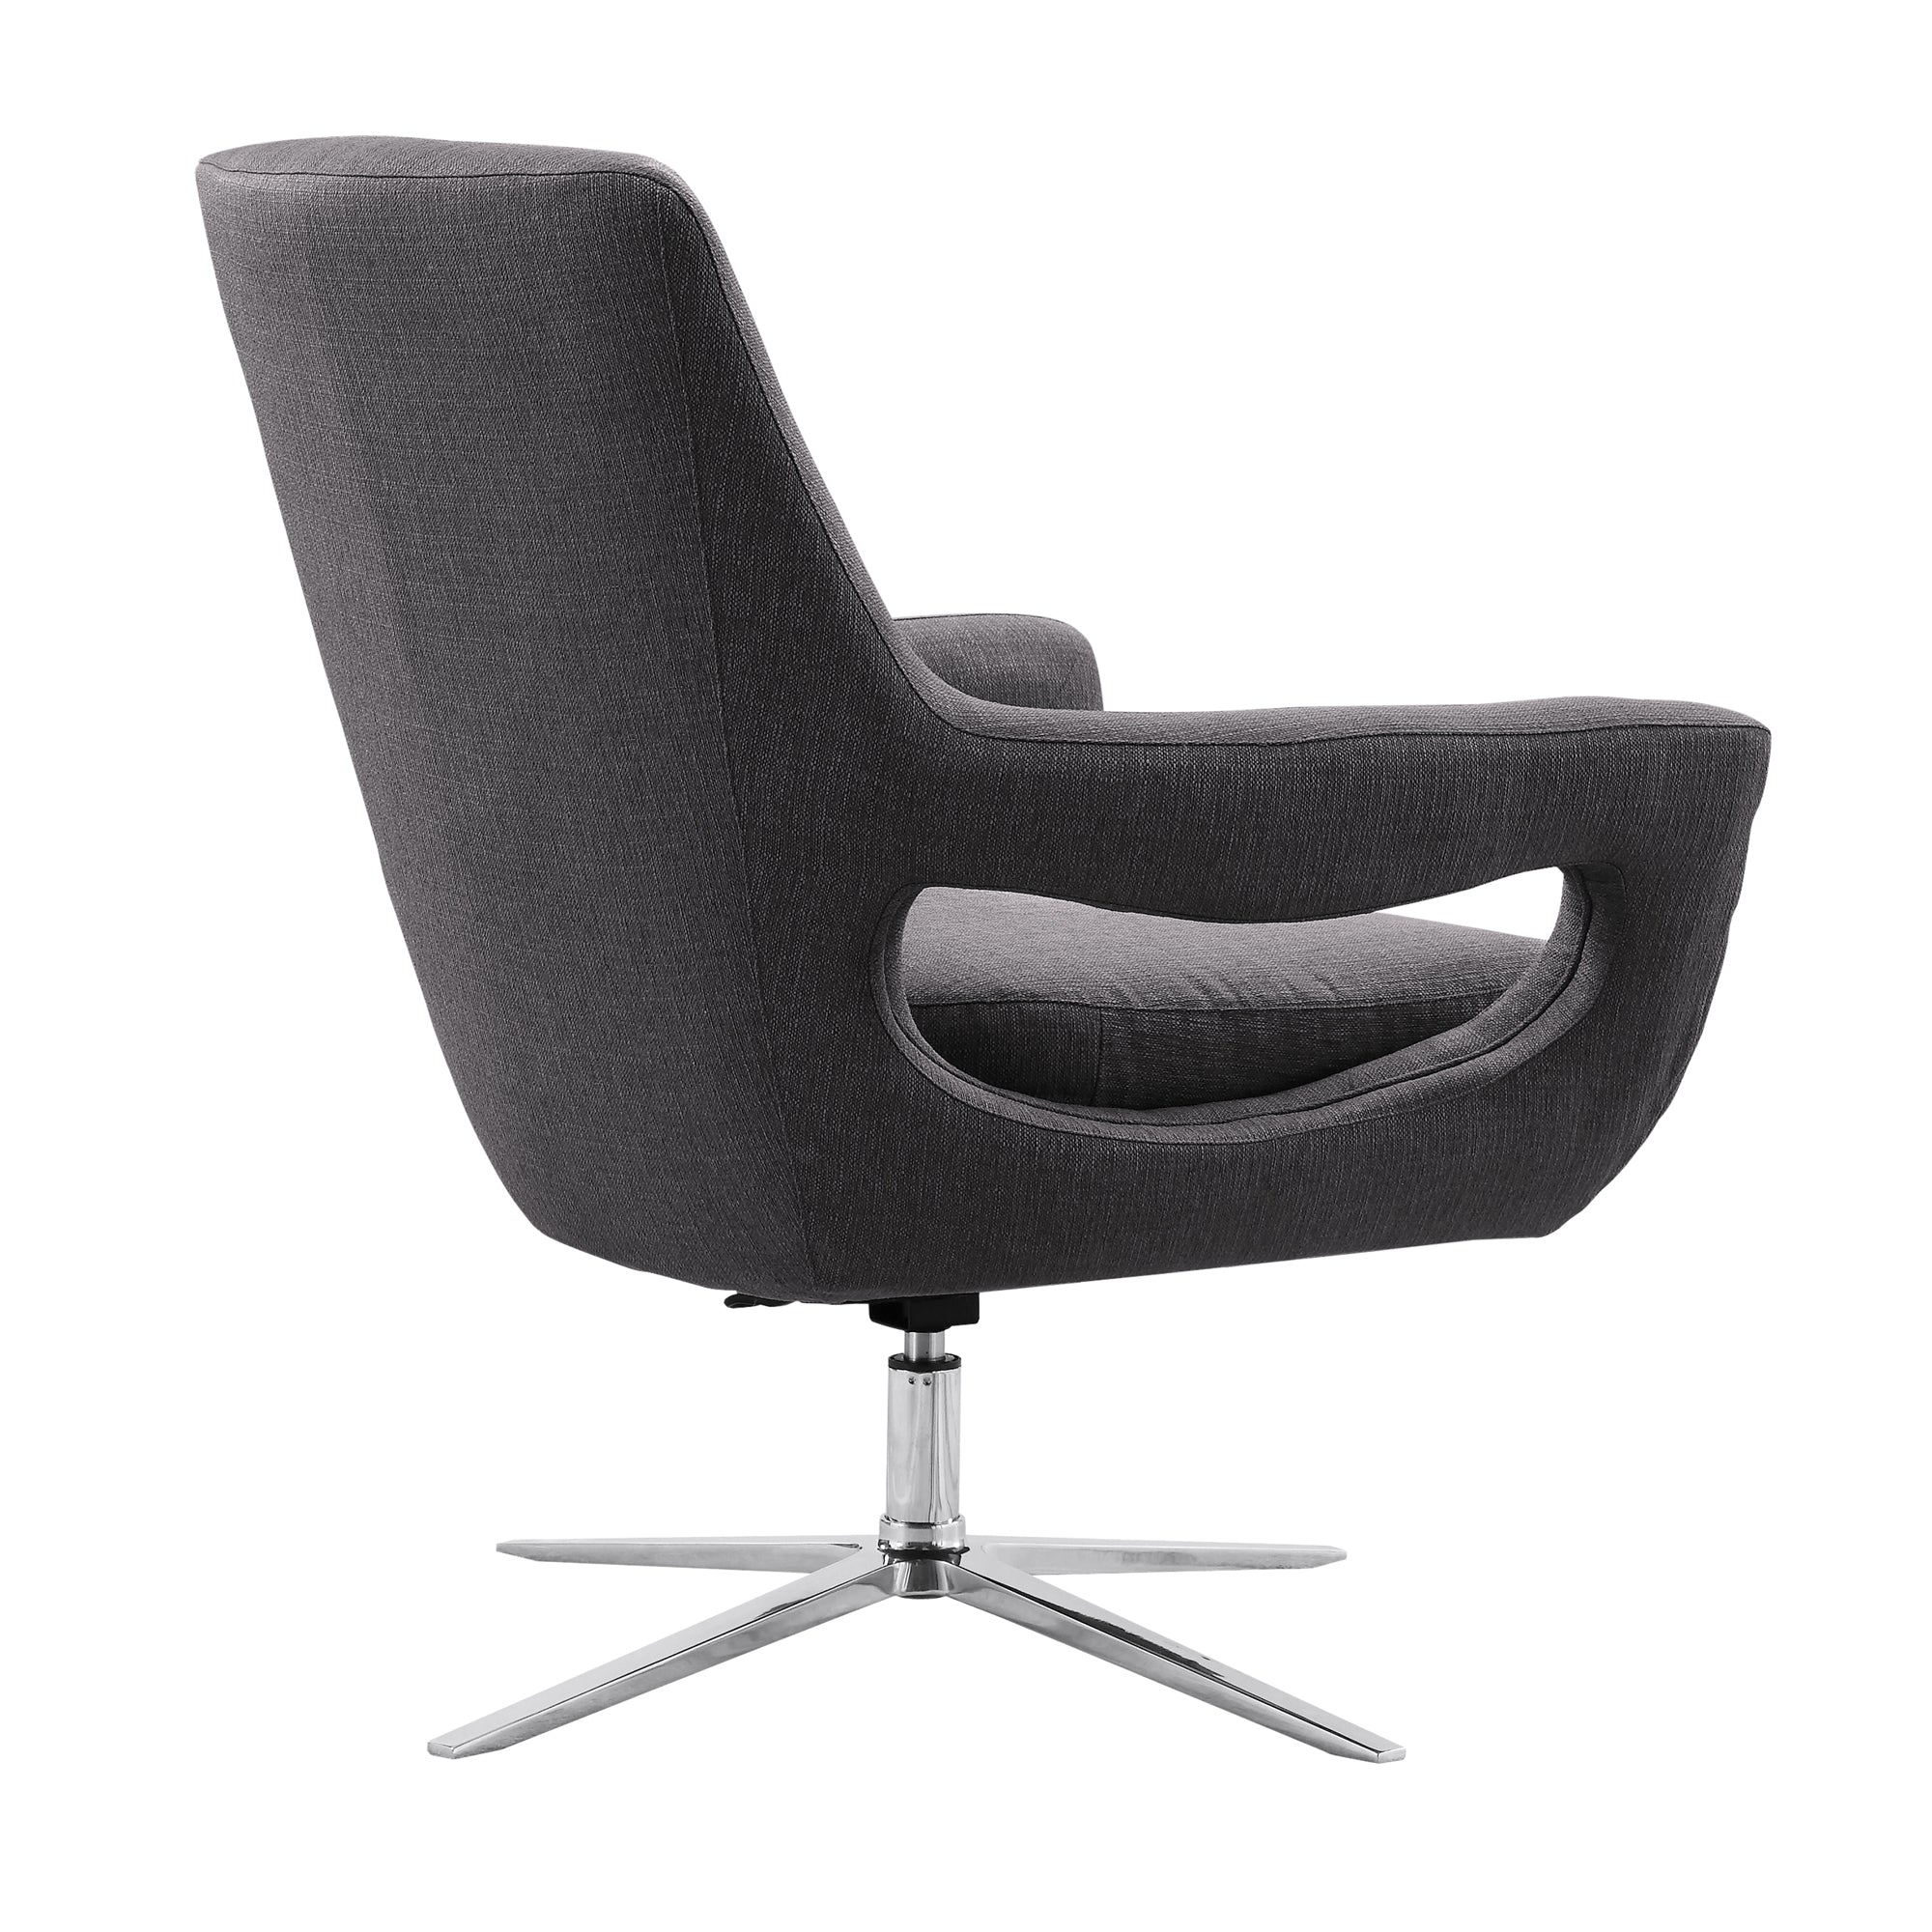 Armen Living Contemporary Adjustable Swivel Accent Chair Polished Chrome Grey Fabric Quinn